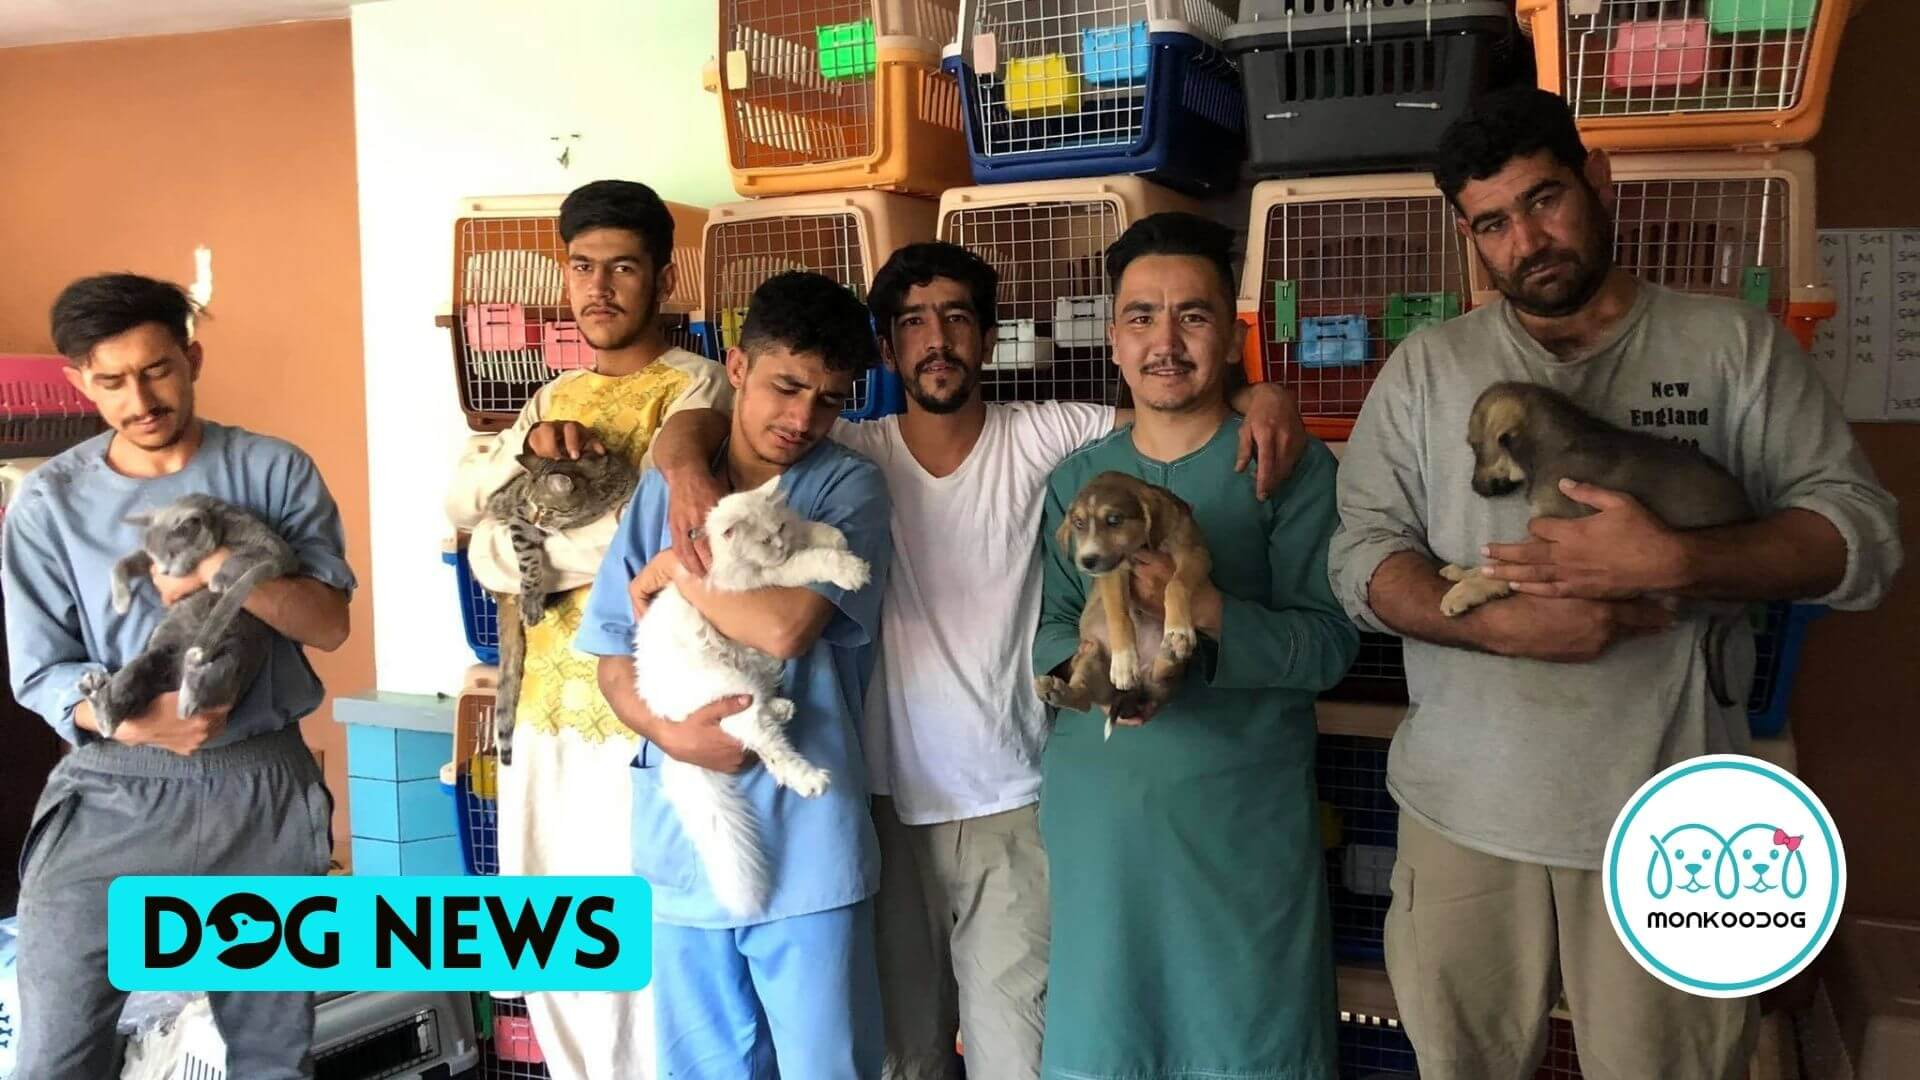 Animal Rescue Group in Kabul Is Racing To Secure Salvation for Hundreds Of Pets by Getting them Out Of Afghanistan, till Aug. 31